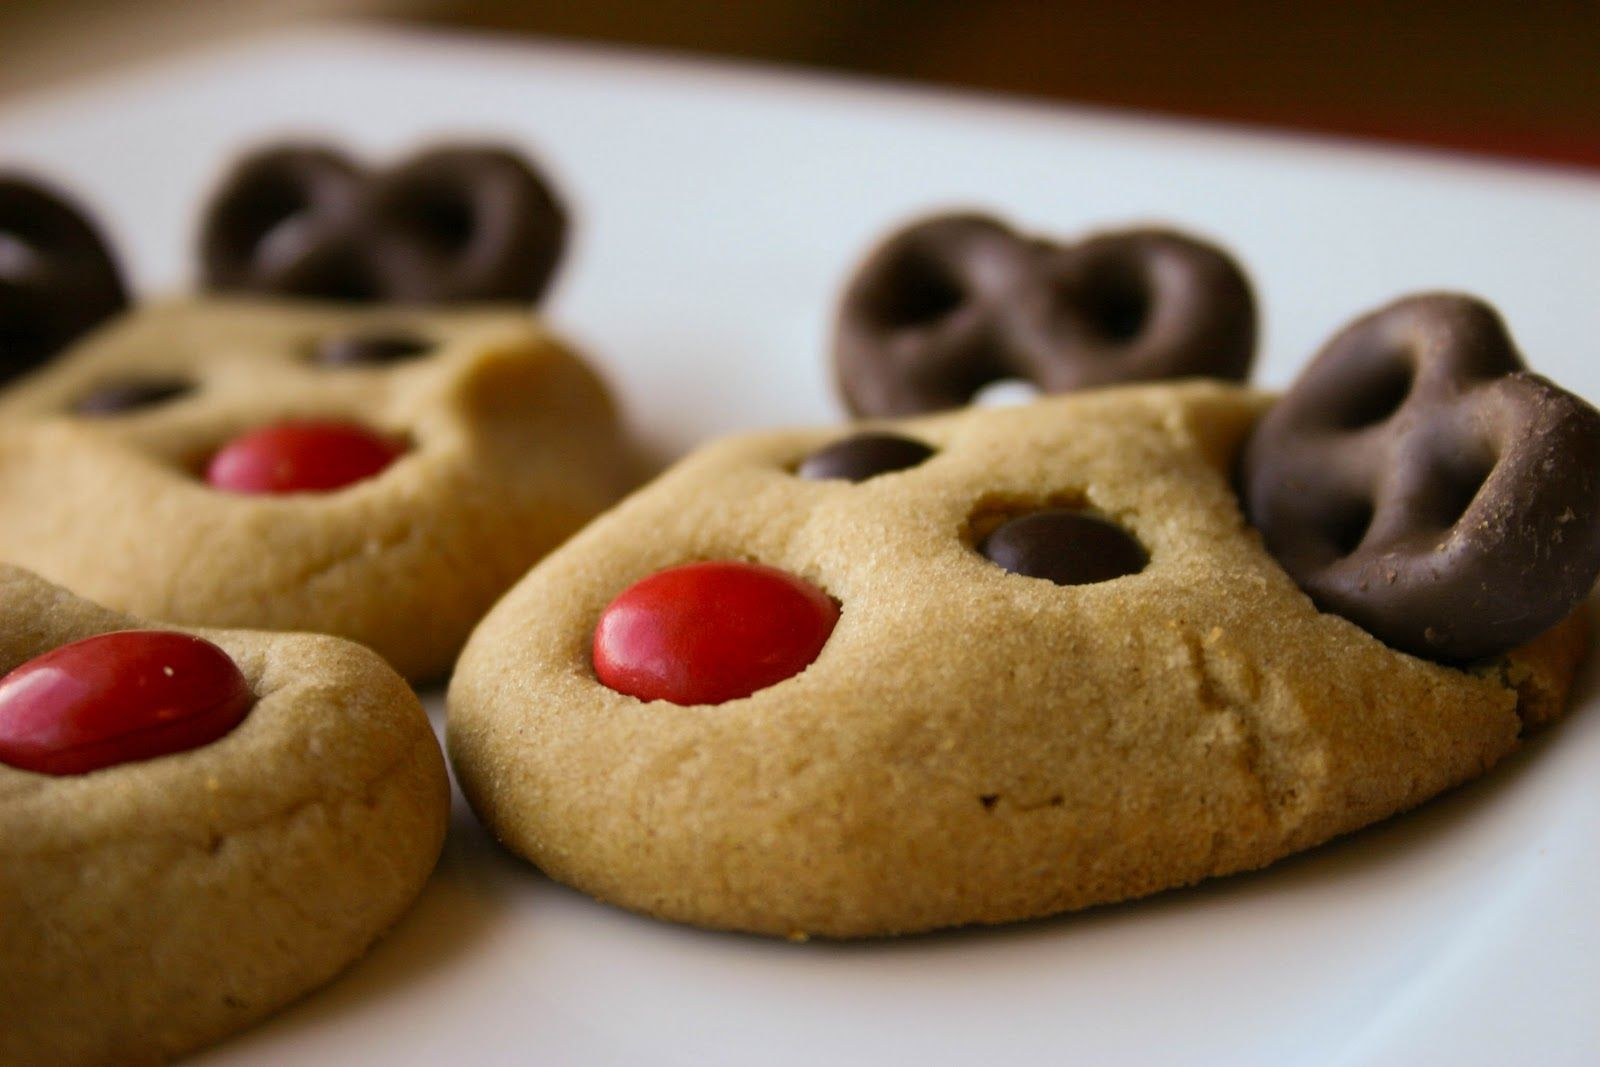 peanut butter reindeer cookies another good holiday cookie idea